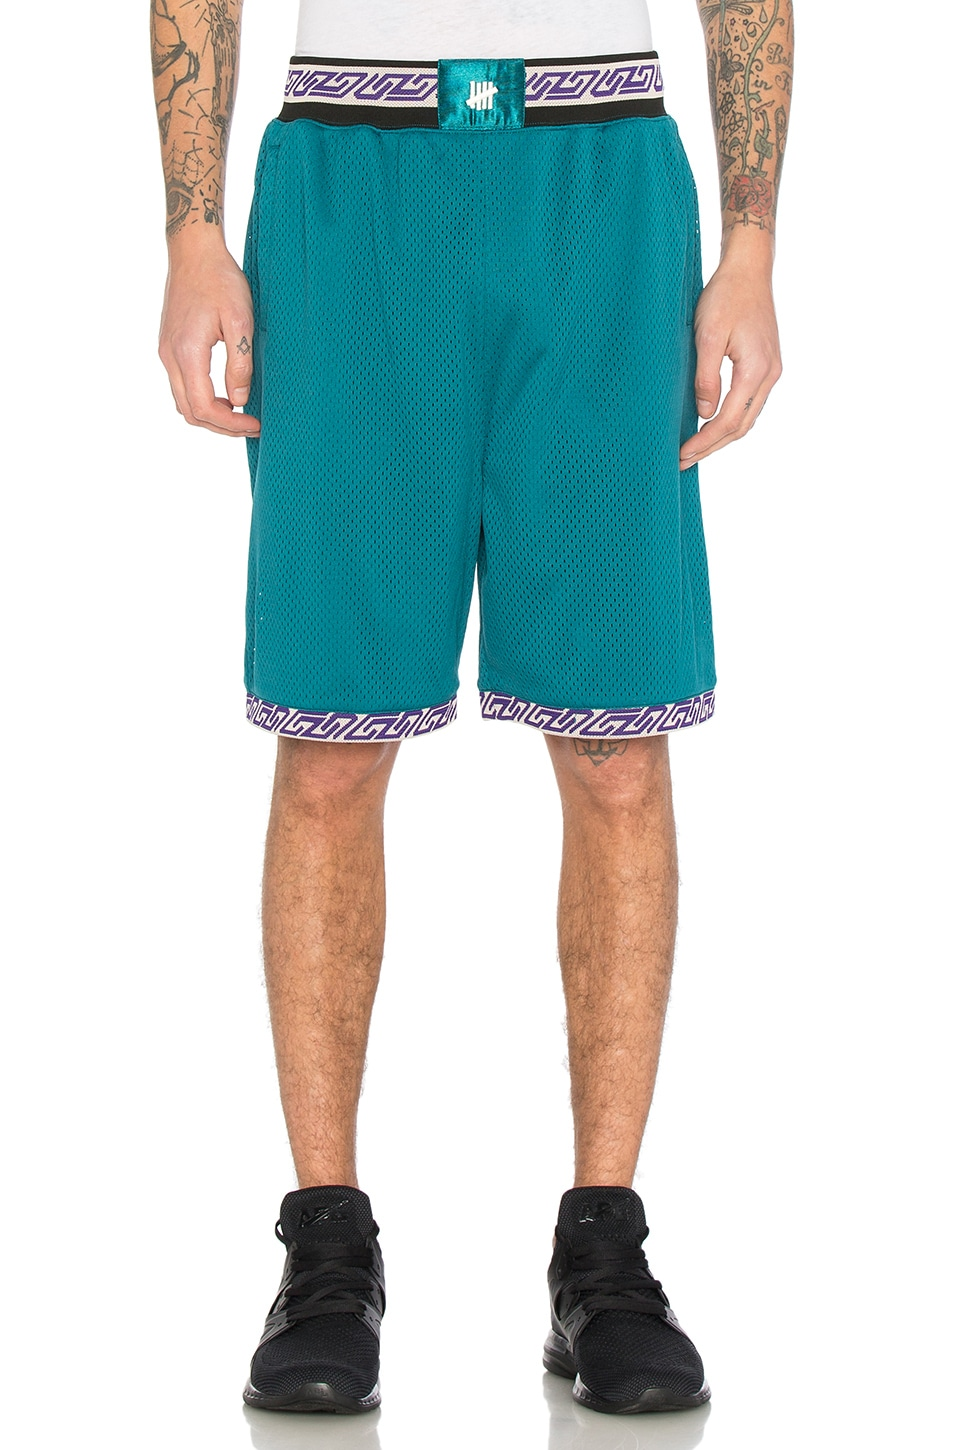 Authentic Basketball Short by Undefeated